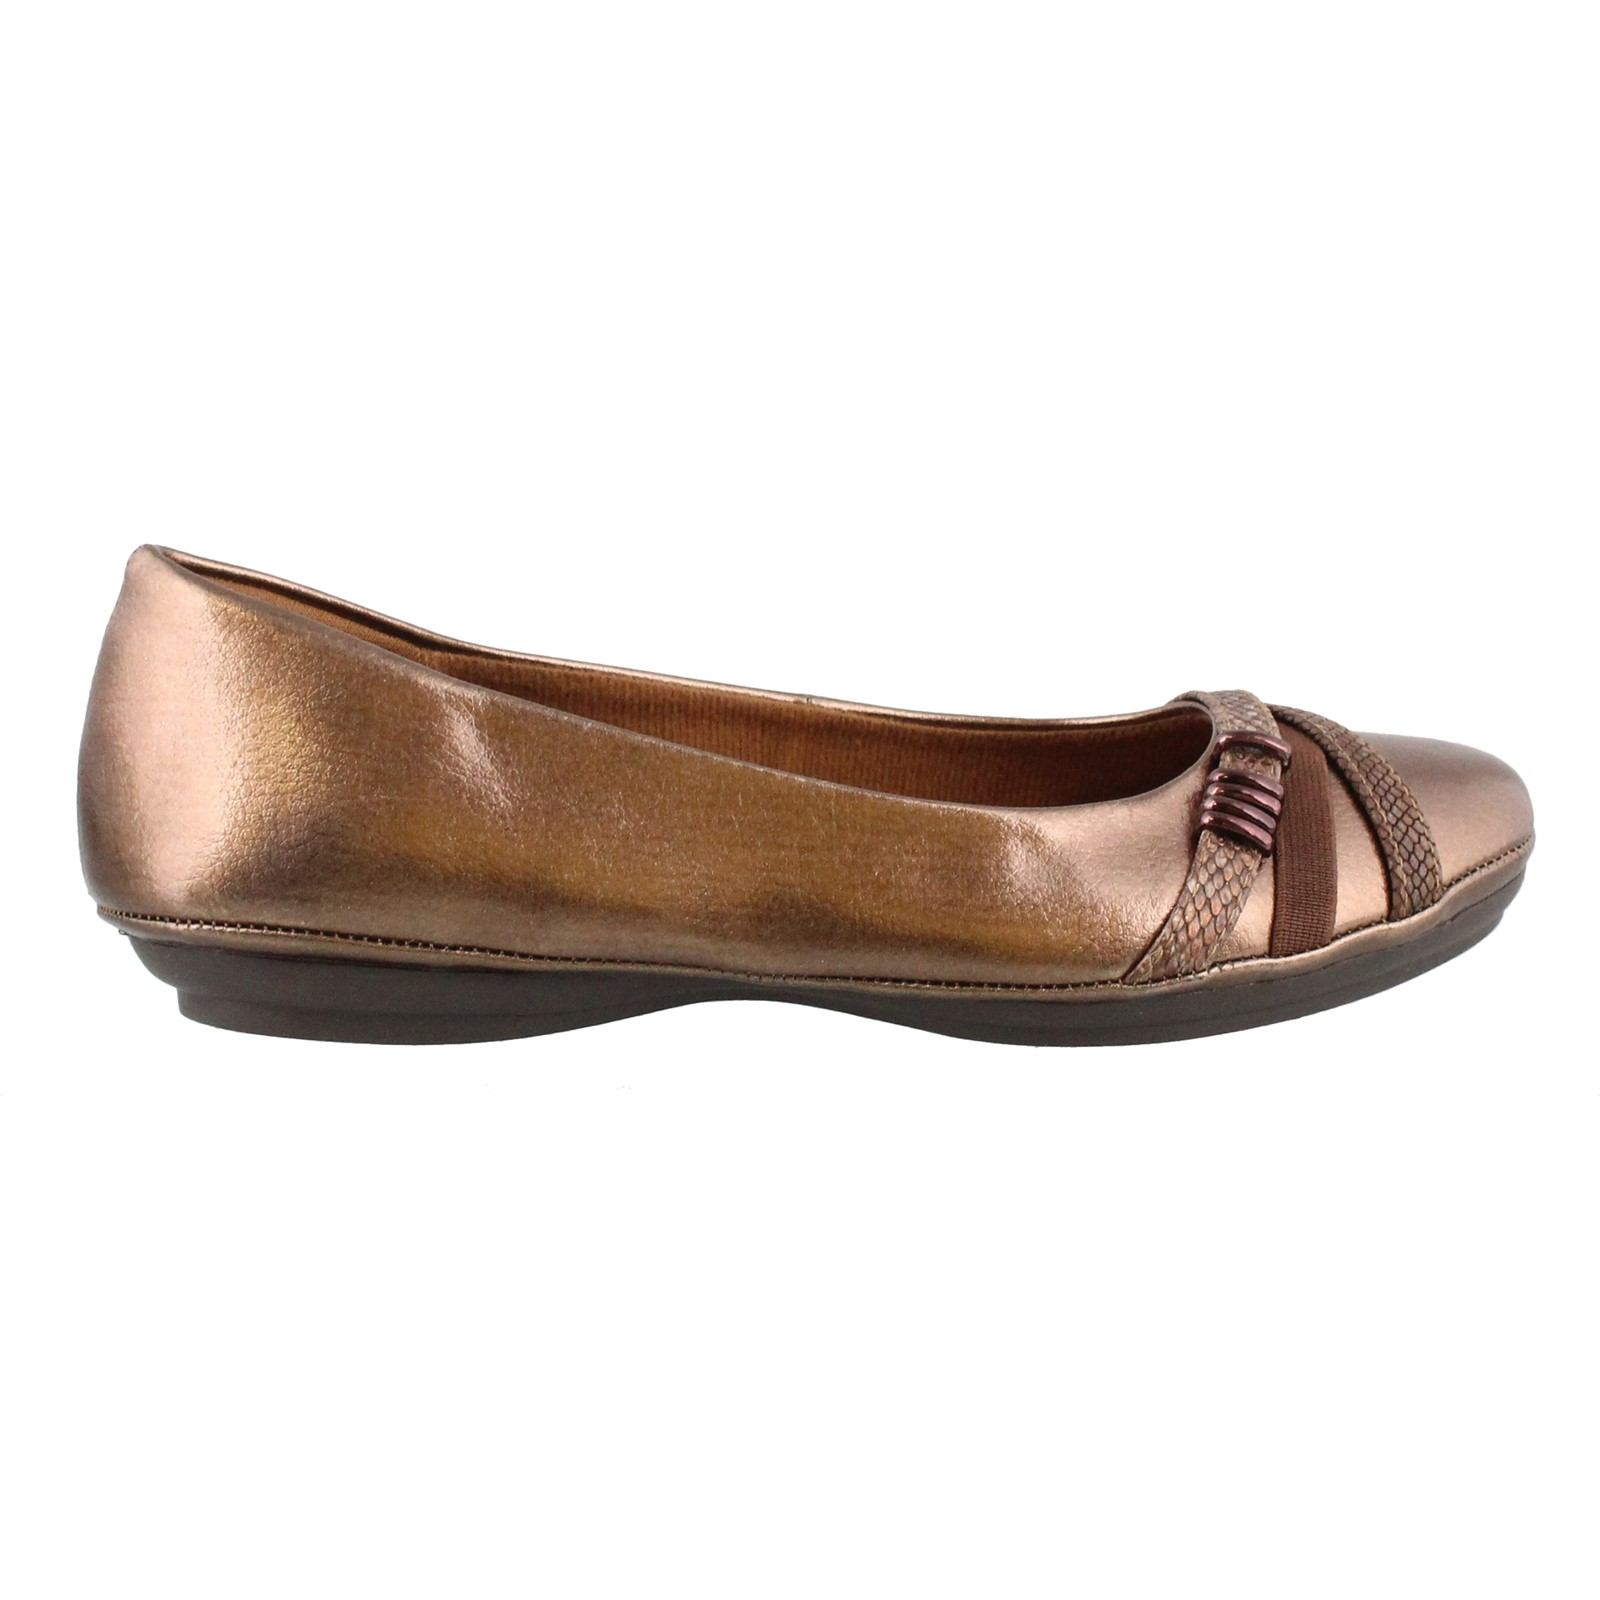 Women's Euro Soft by Sofft, Shaina Slip on Flat